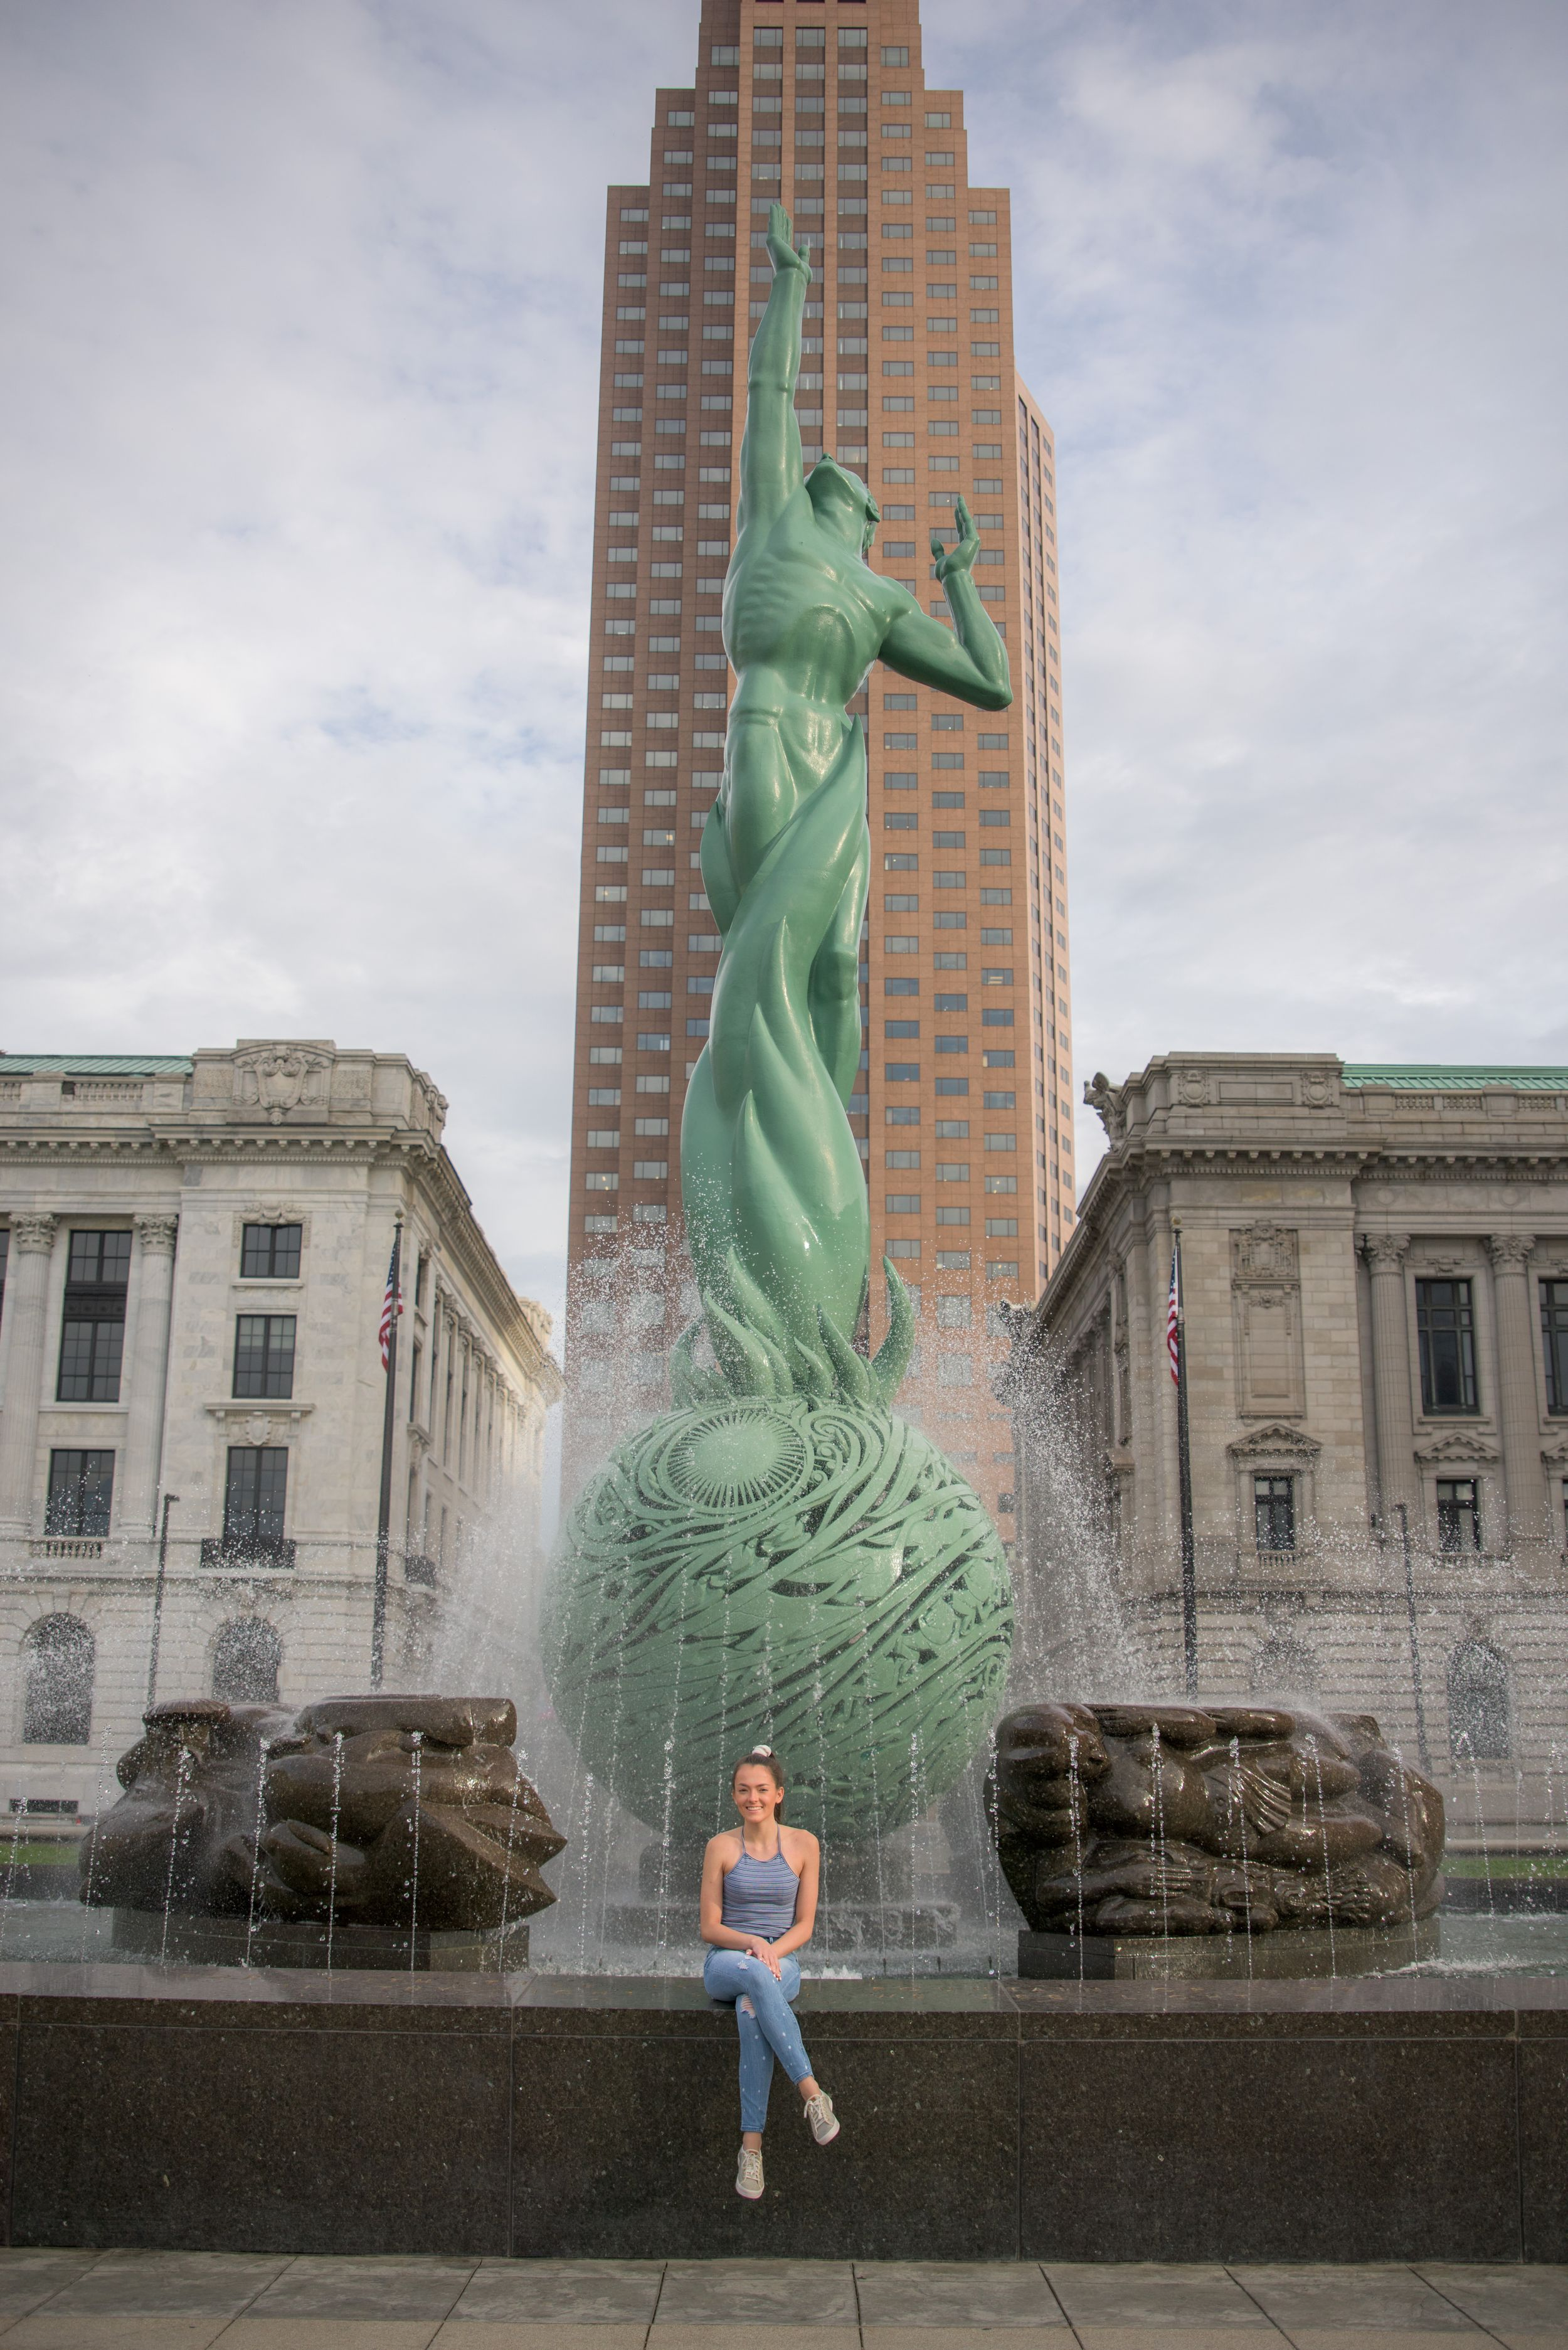 Malina (St Jospeh Academy Class of 2020) in front of Fountain of Eternal Life, Cleveland, Ohio